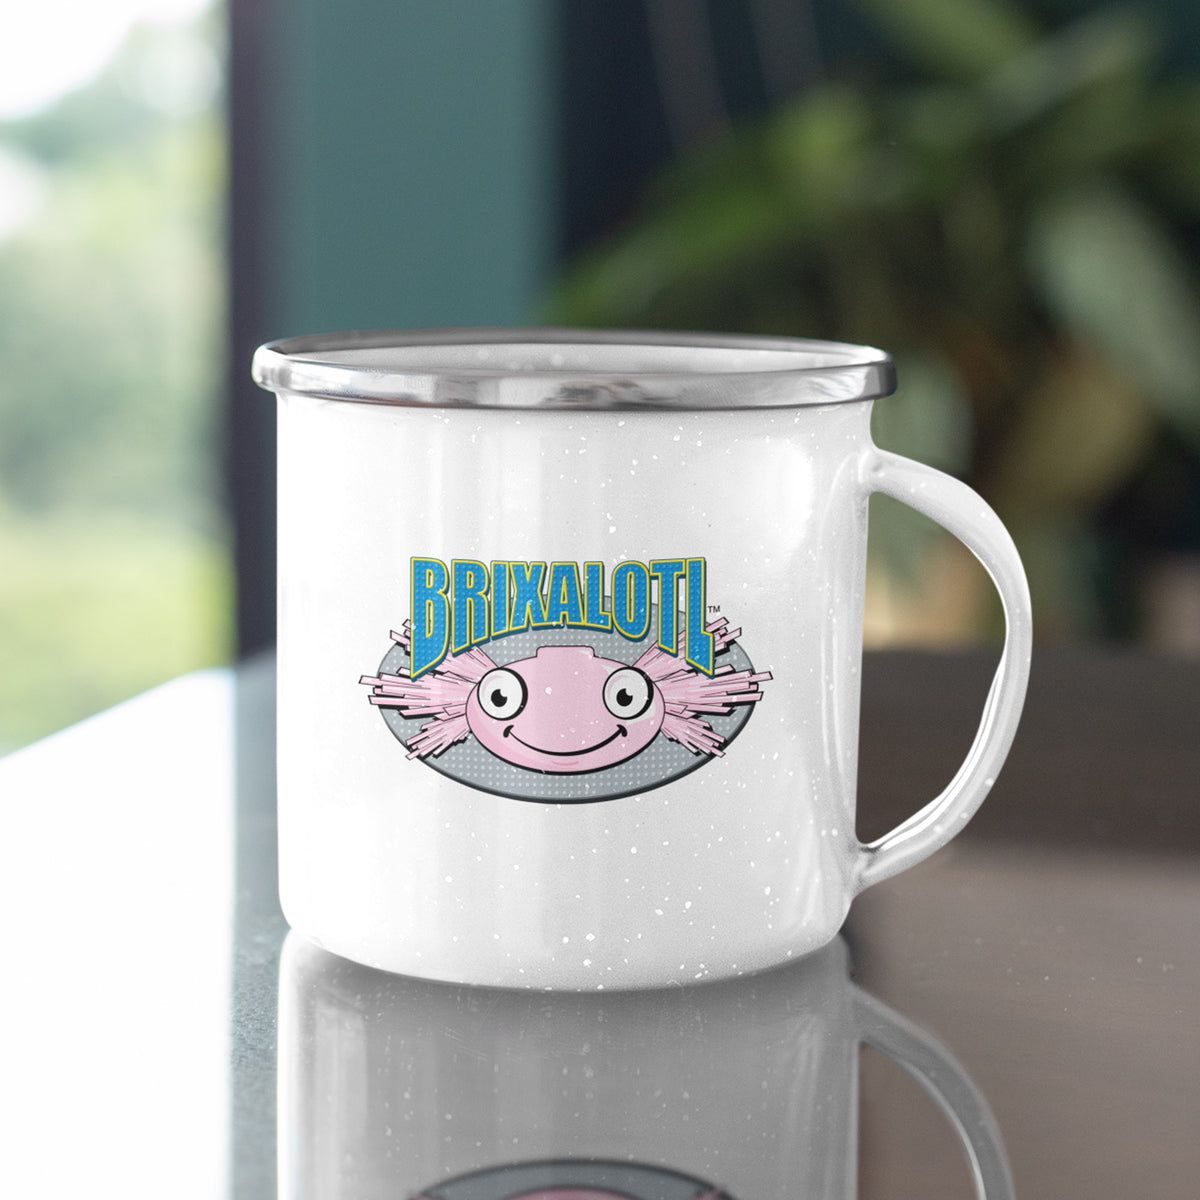 Brixalotl We Support PA Camp Mug